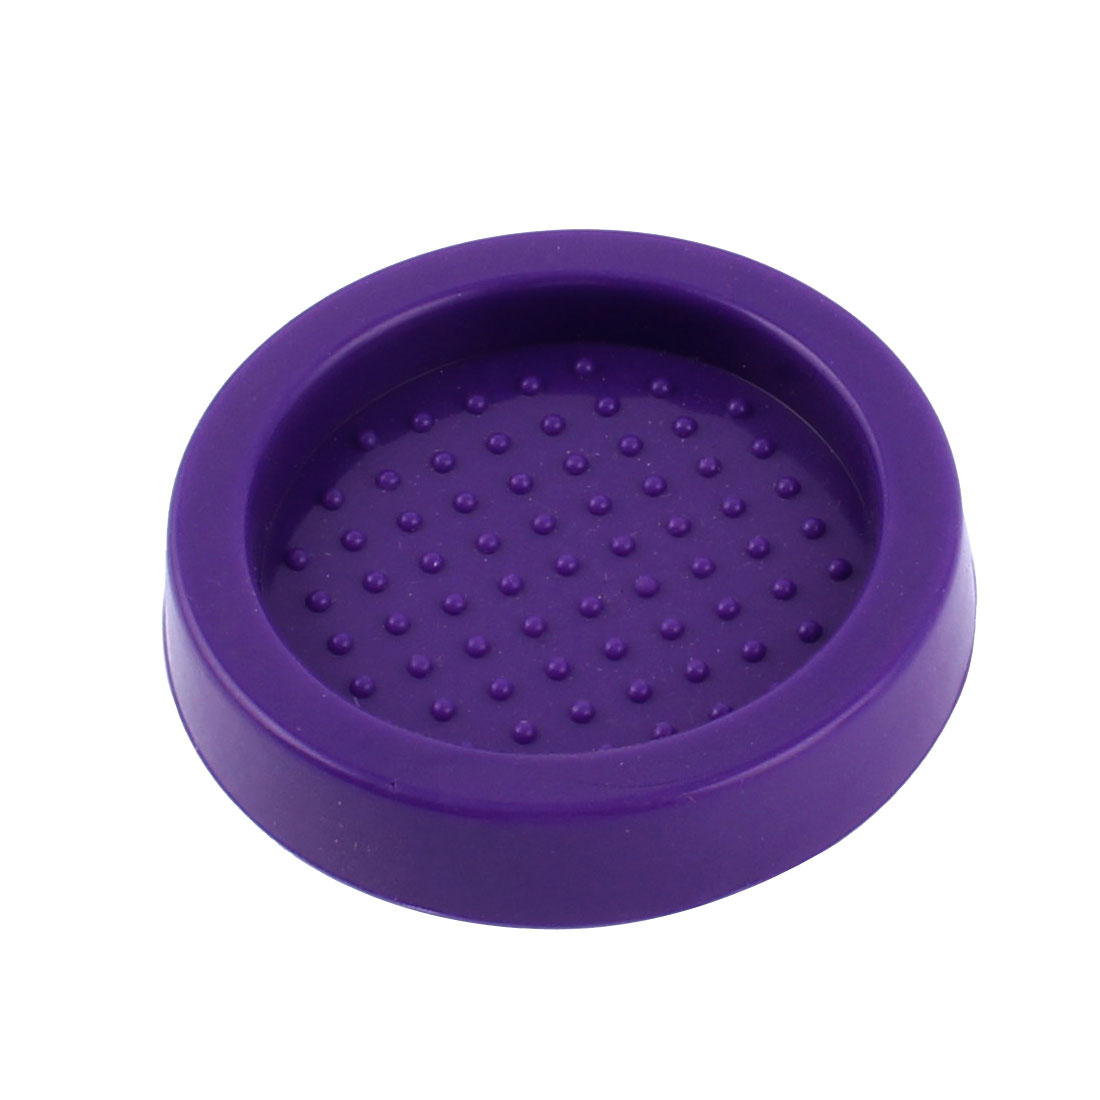 Purple Rubber Round 60mm Dia Coffee Tamper Base Seat Holder Tamping Mat Pad